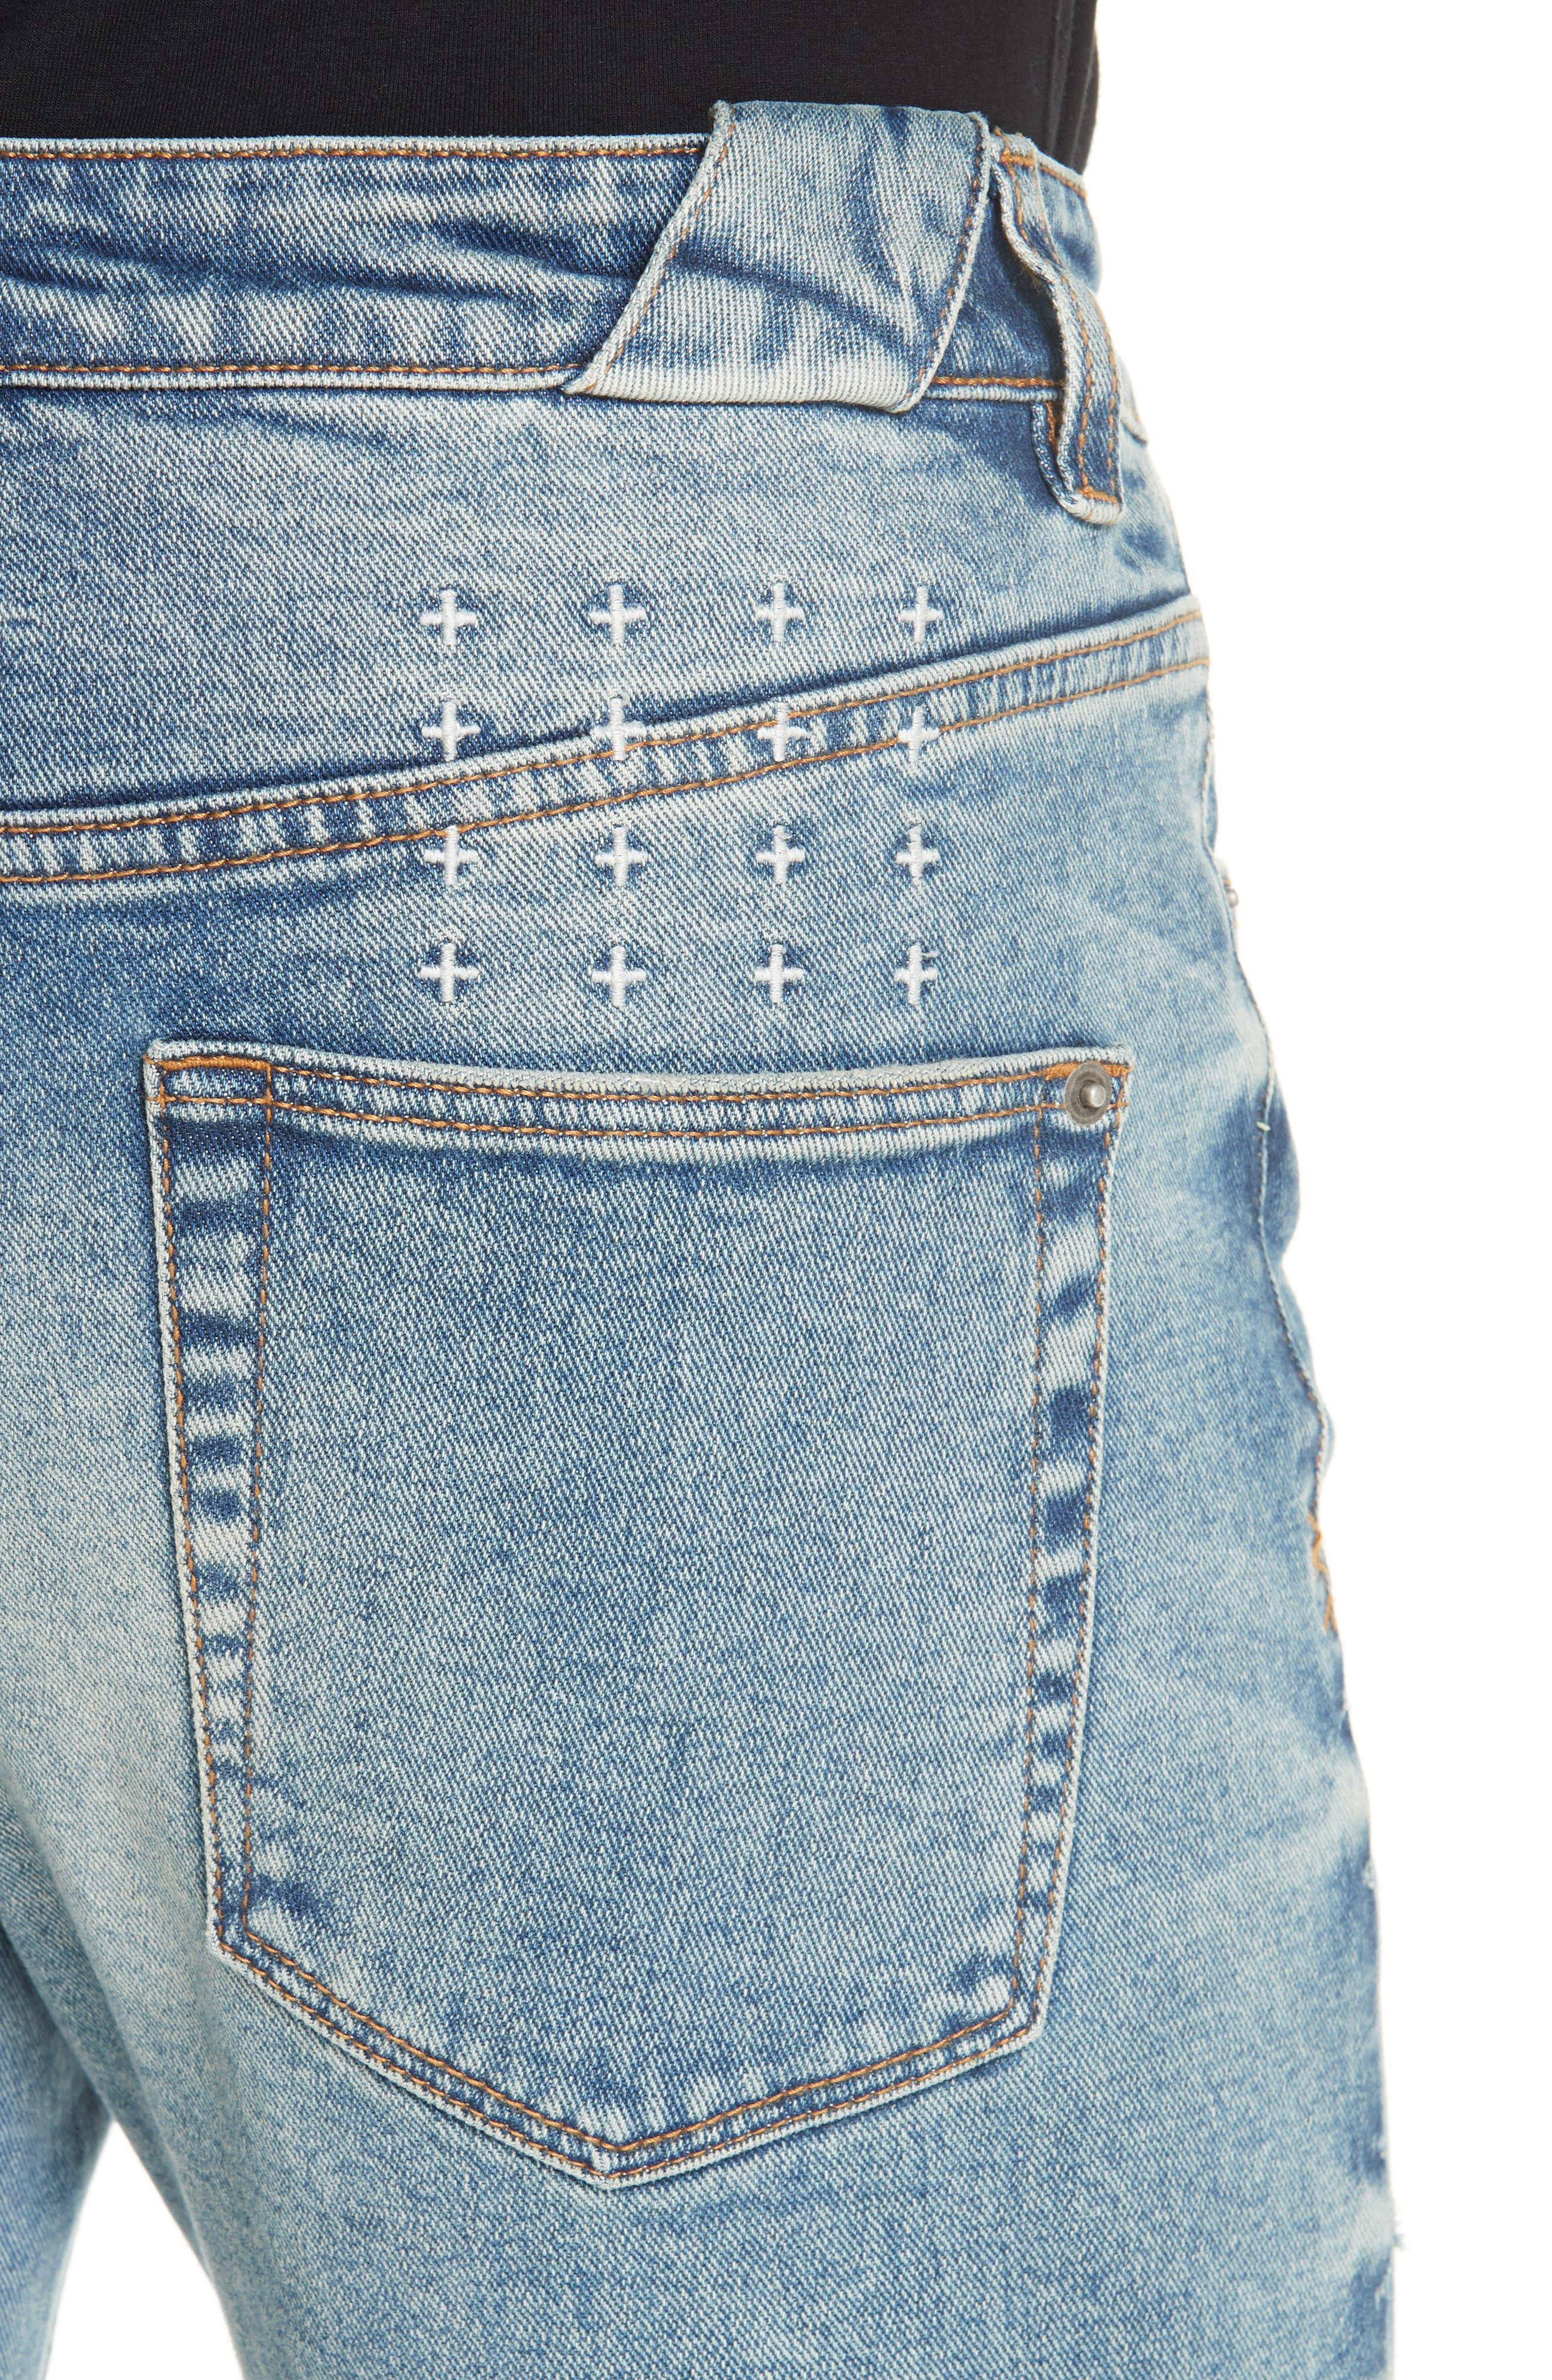 Chitch Pure Dynamite Skinny Fit Jeans,                             Alternate thumbnail 4, color,                             DENIM